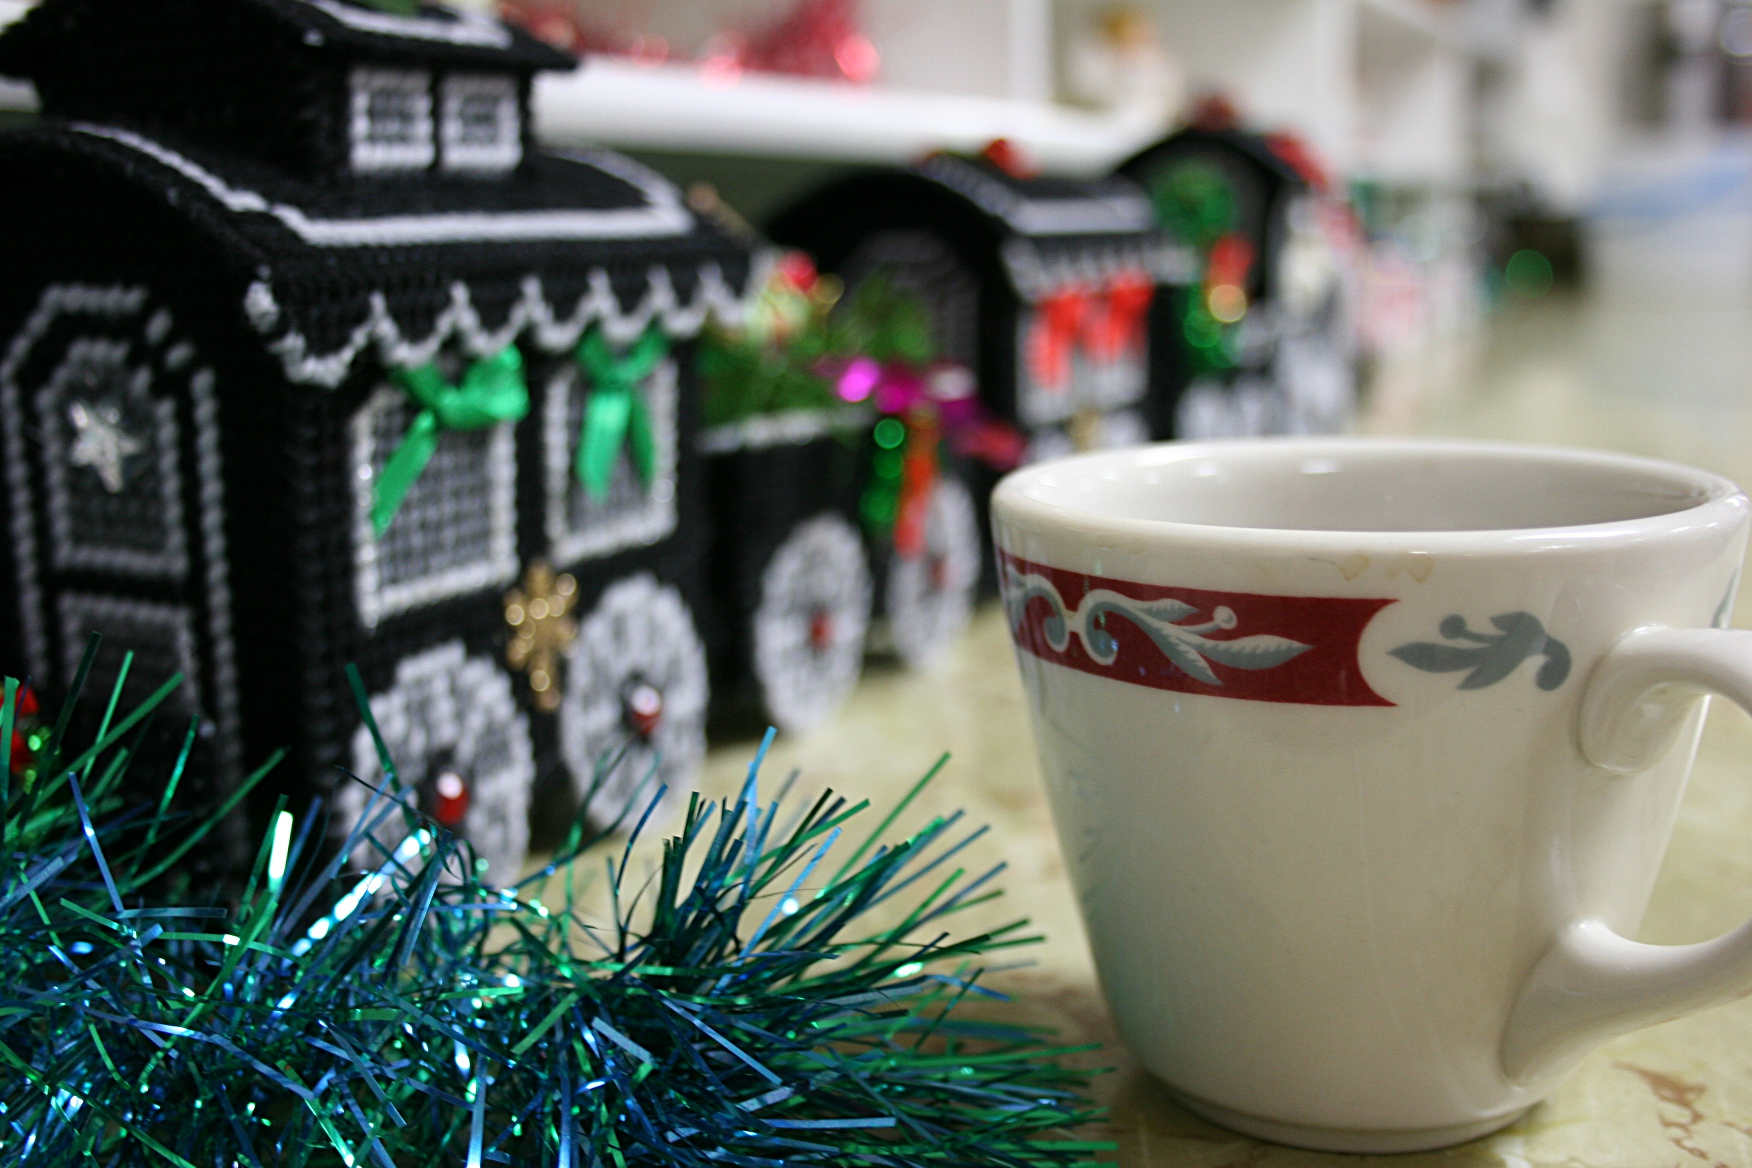 I noticed this full coffee cup setting on a cupboard lined with holiday decorations. During the congregation's Lenten soup luncheons, desserts fill the shelves.